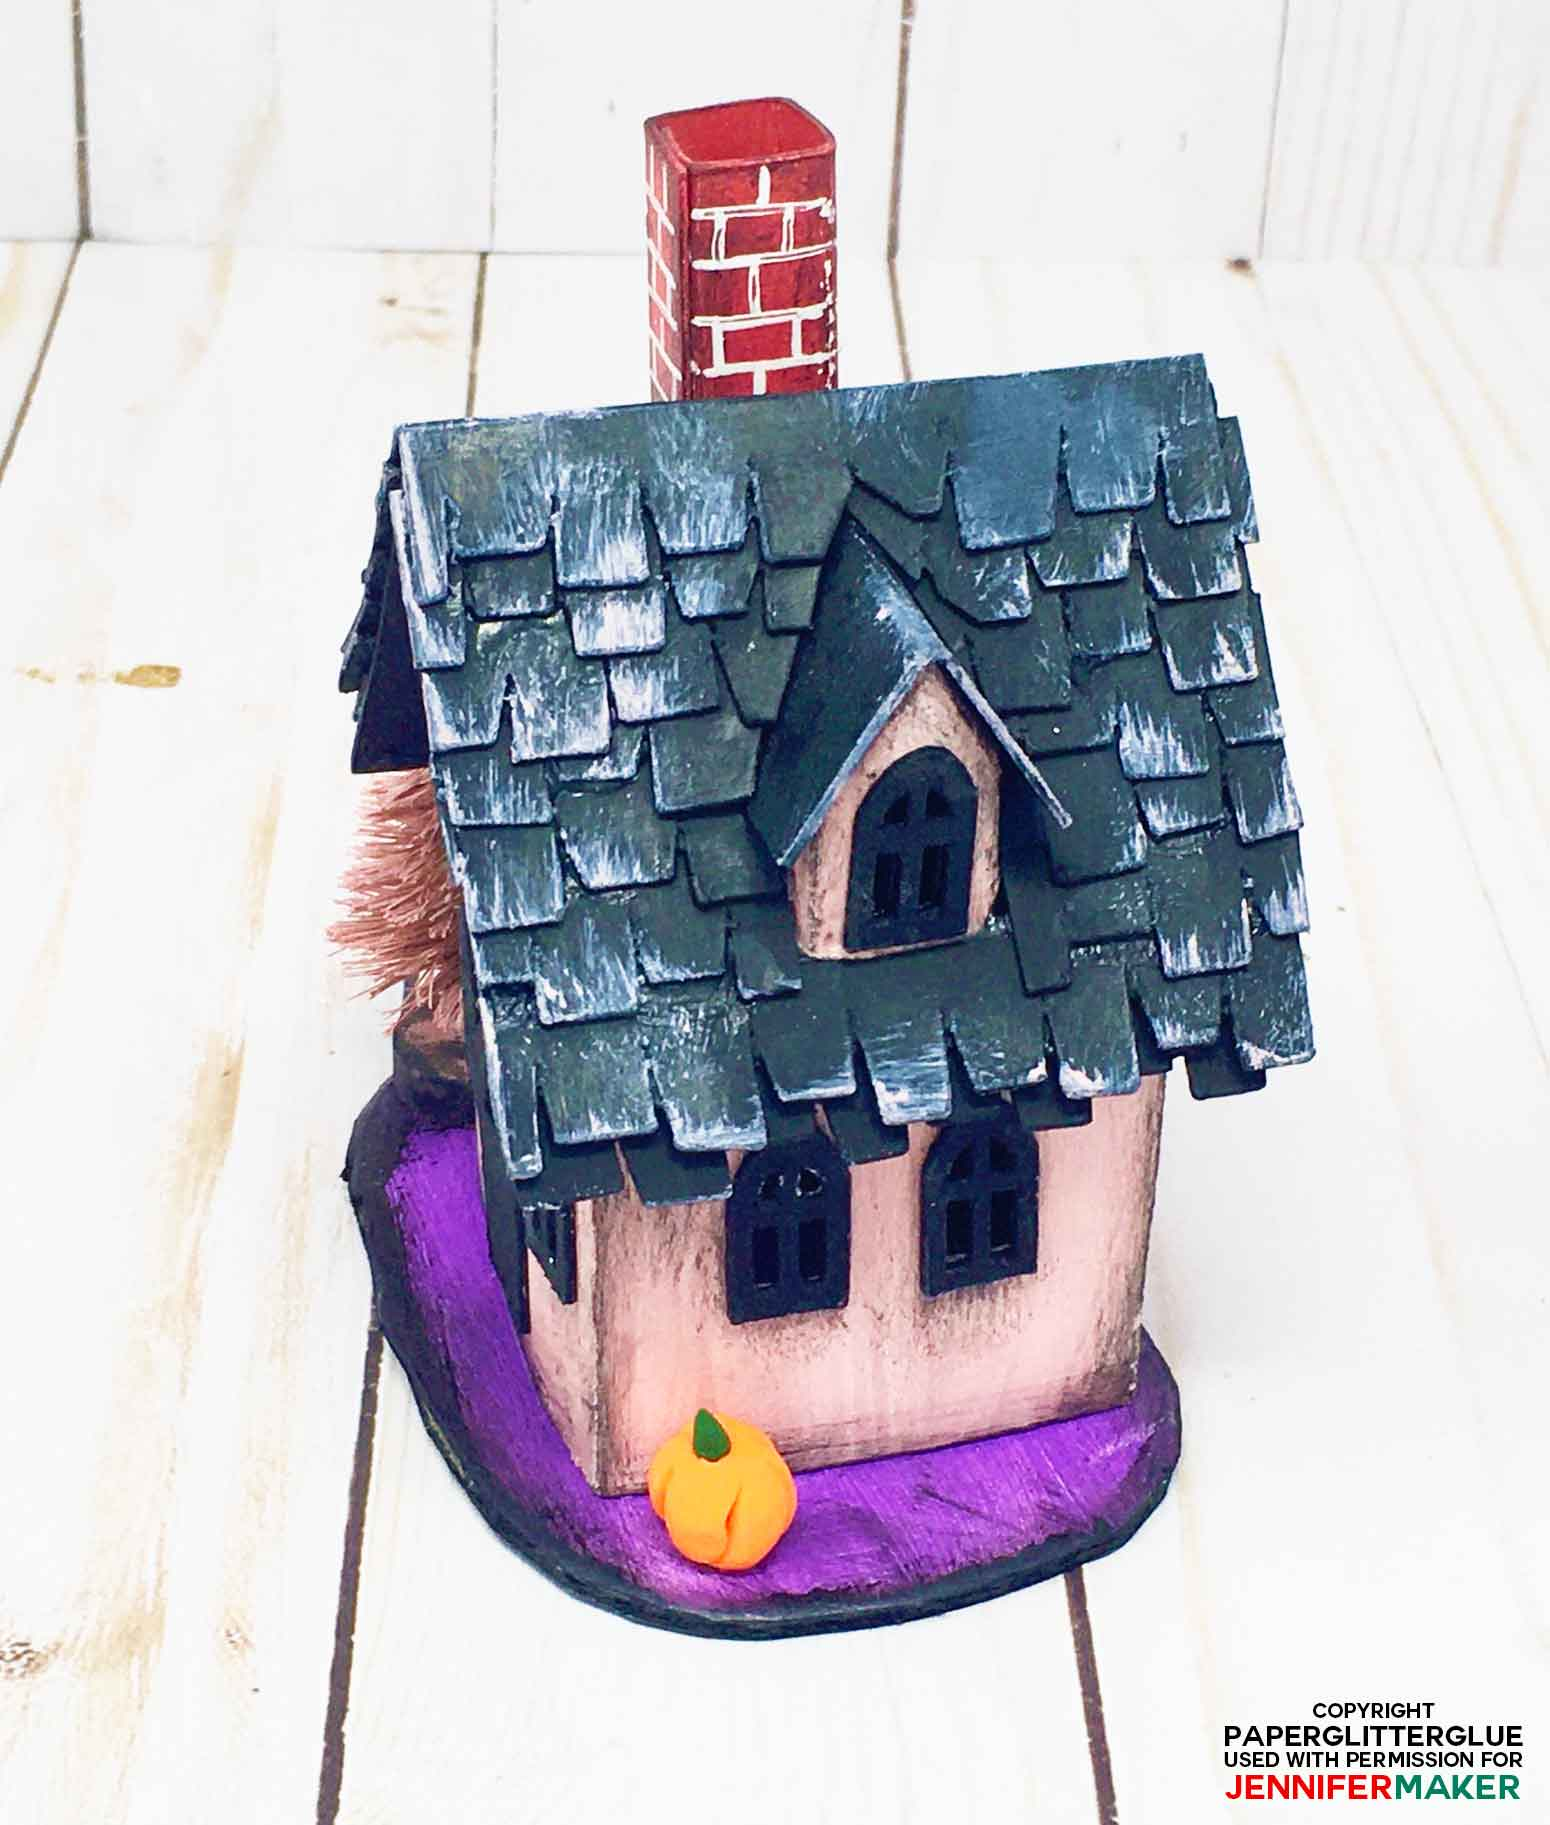 Dormer on roof of the little Halloween Paper Haunted House